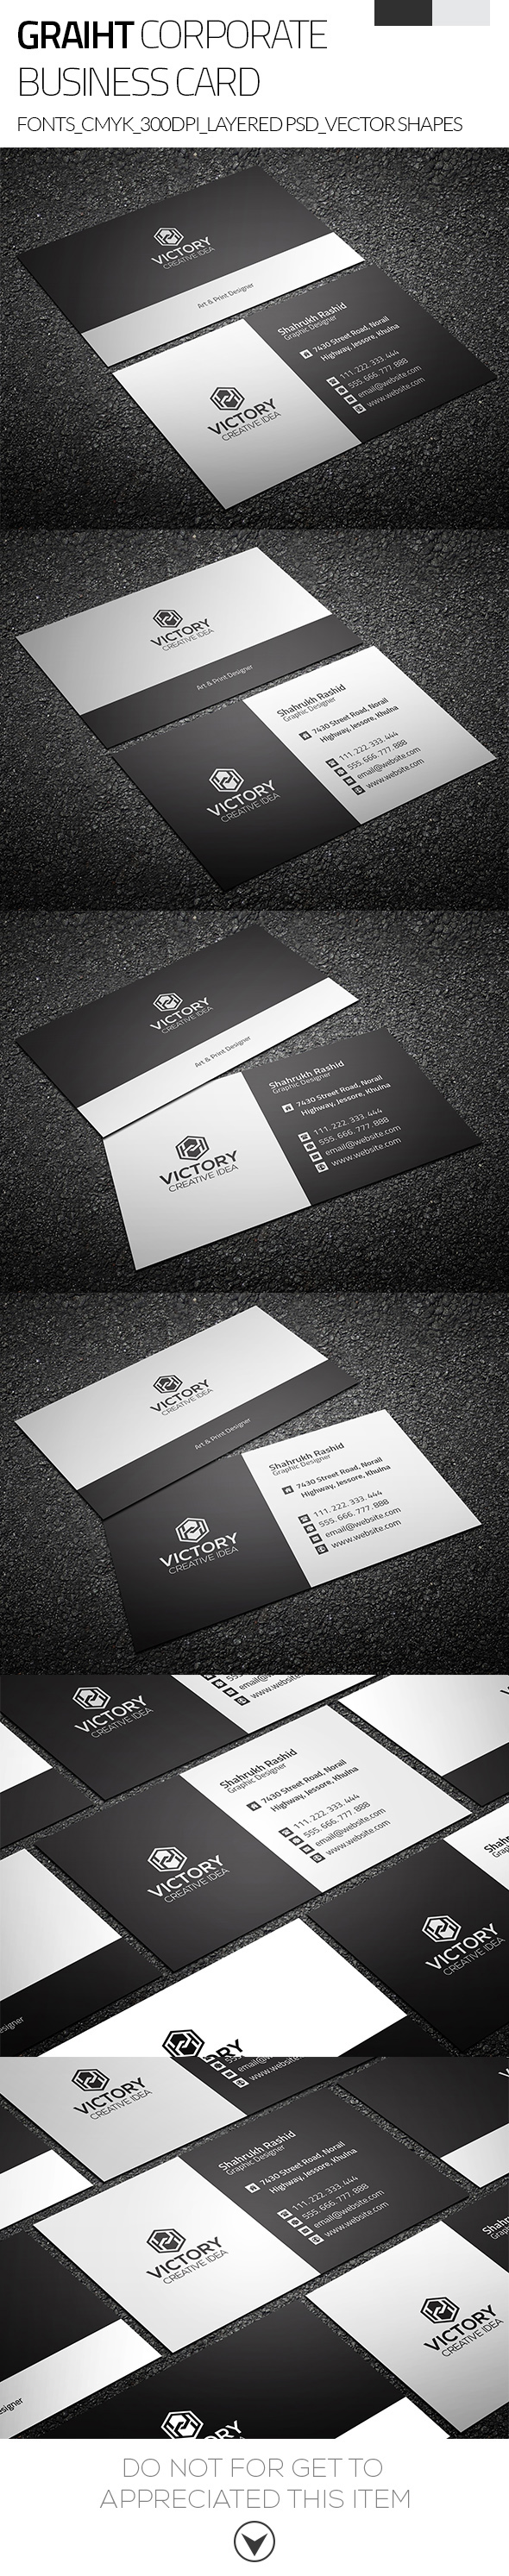 Download i graiht corporate business card free on behance reheart Gallery